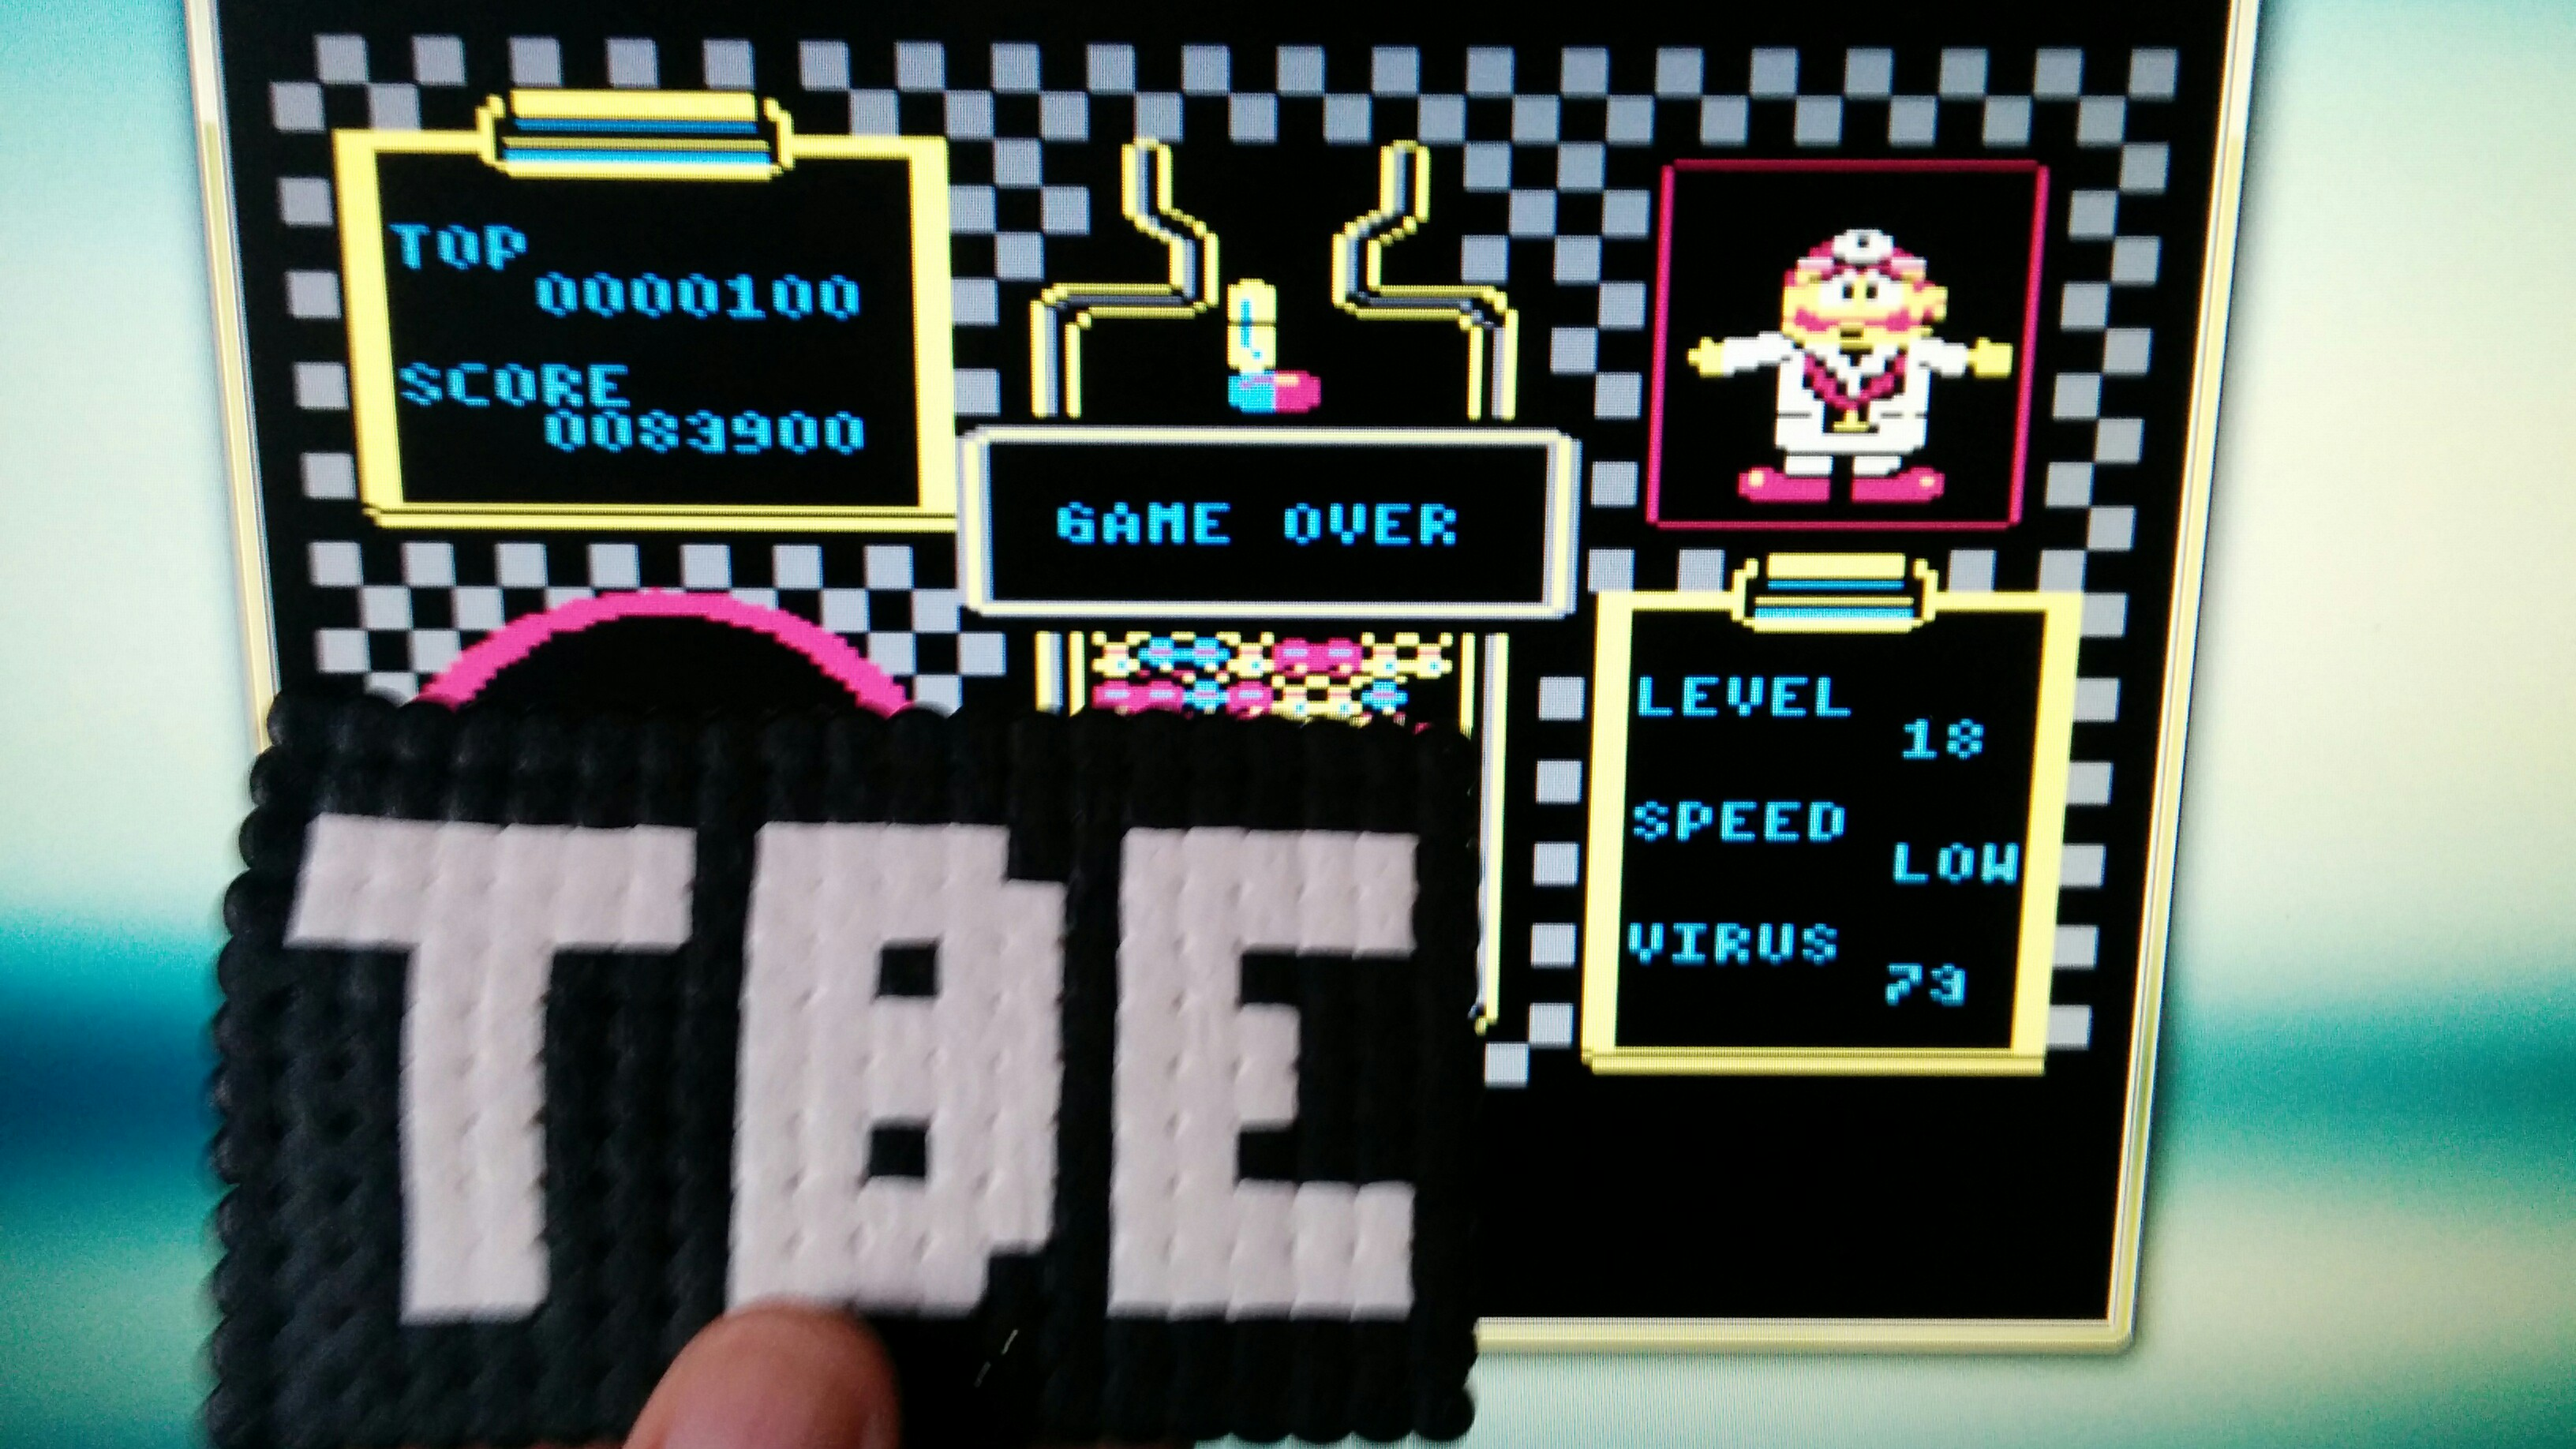 Sixx: Dr. Mario: Low (Atari 400/800/XL/XE Emulated) 83,900 points on 2014-10-10 11:06:06